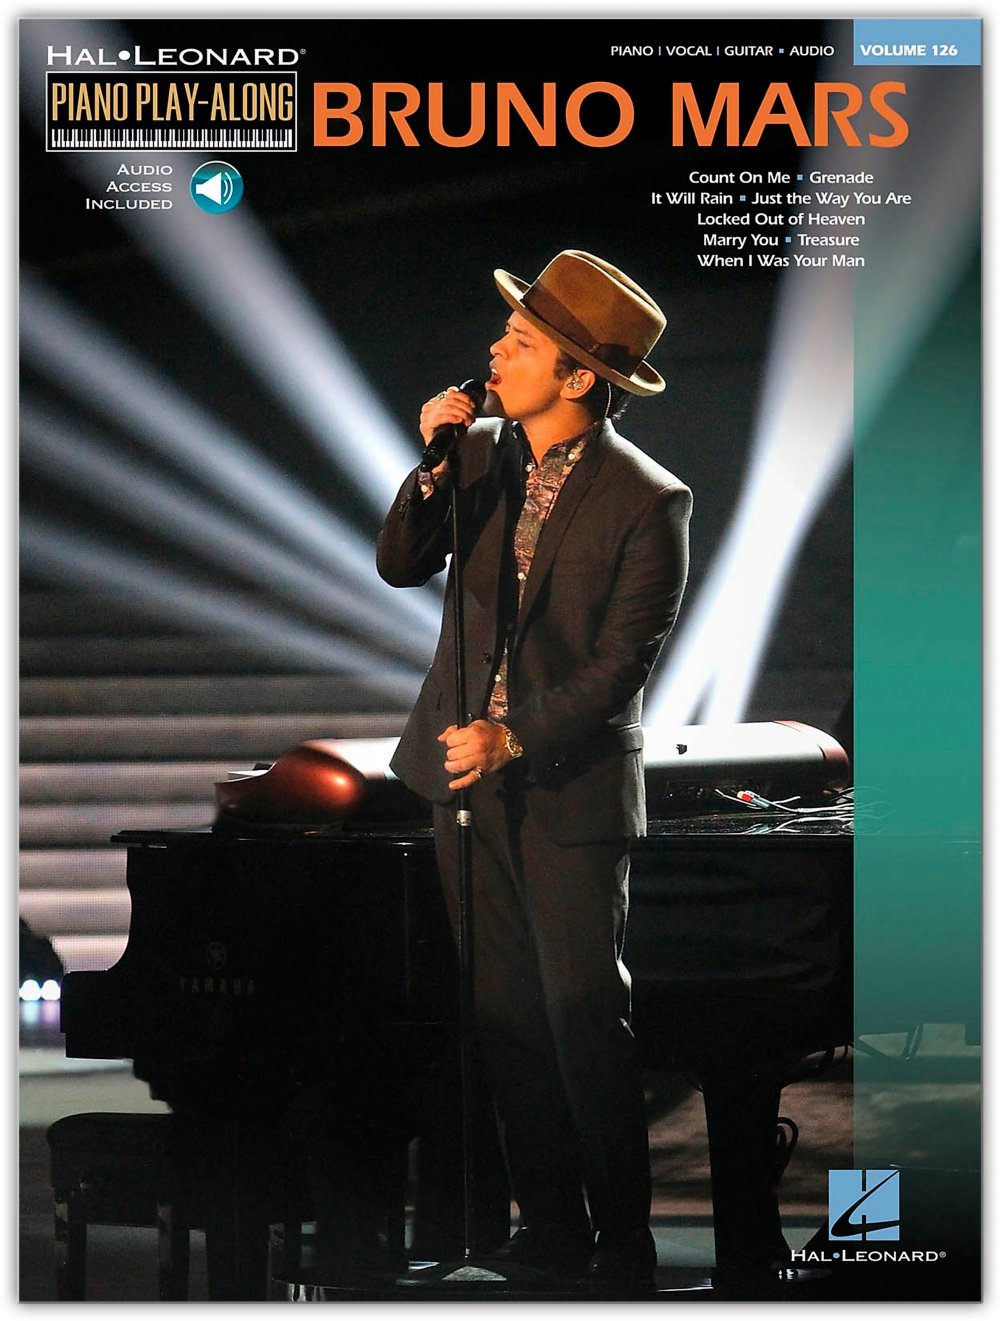 Hal Leonard Bruno Mars - Piano Play-Along Volume 126 Book/CD: Hal